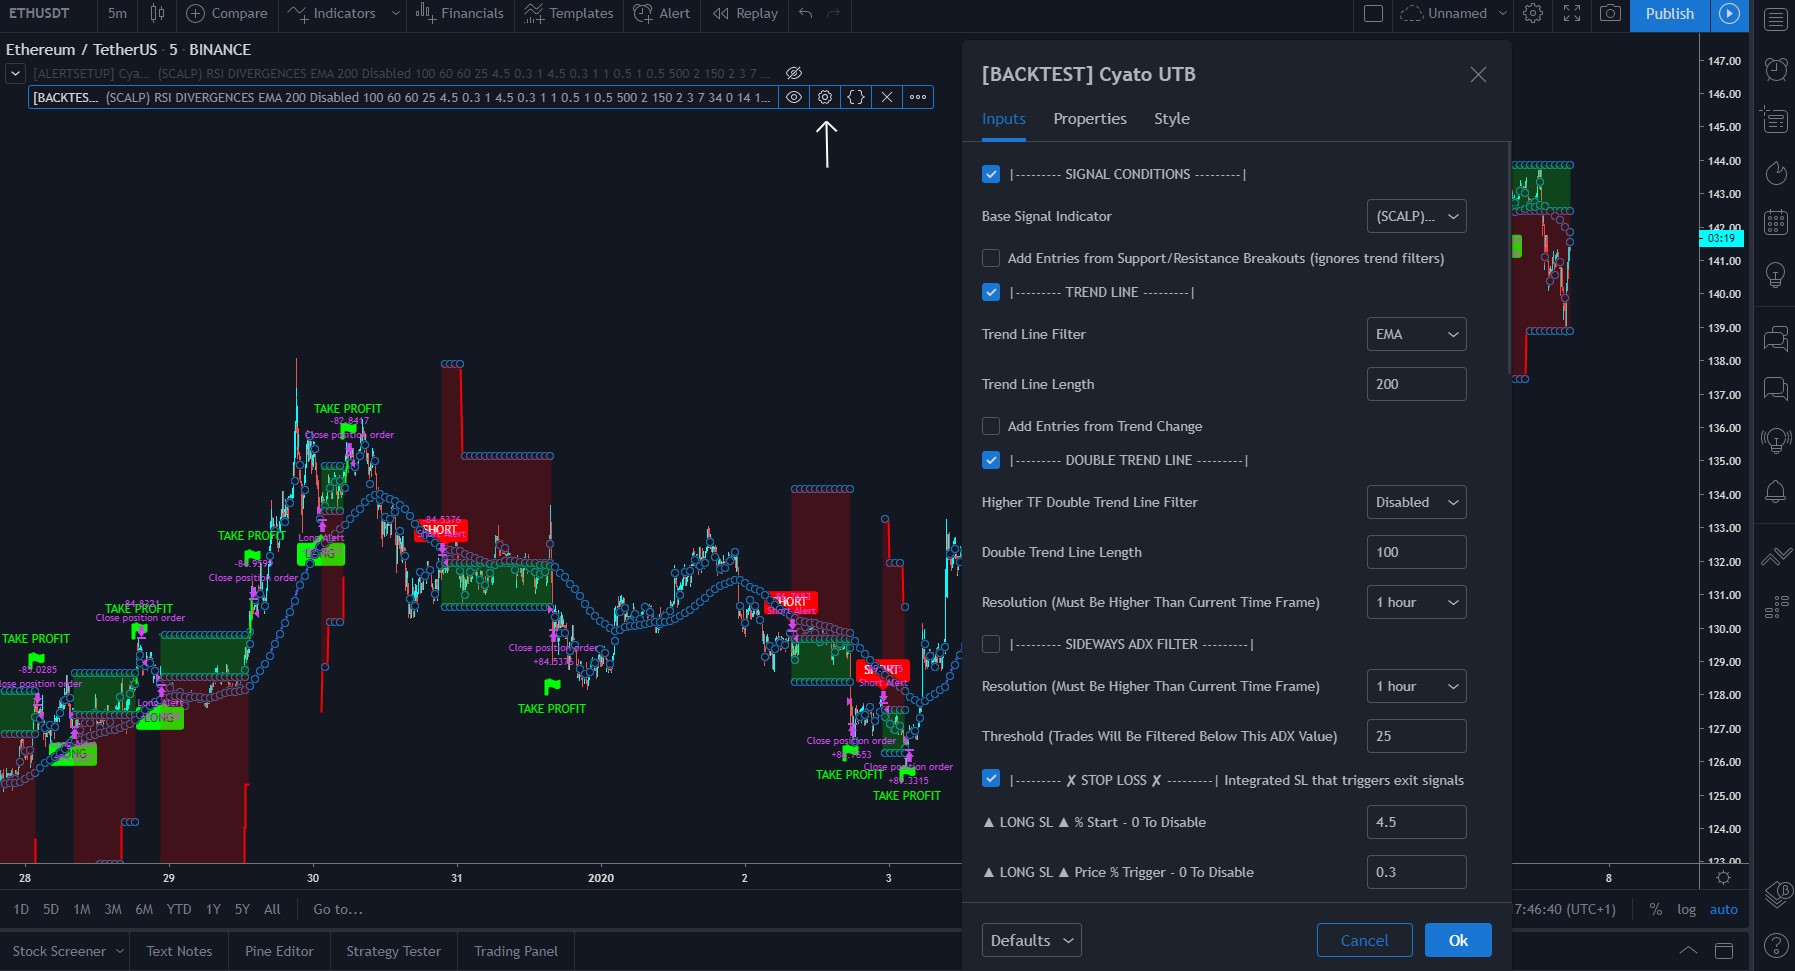 Tradingview notification